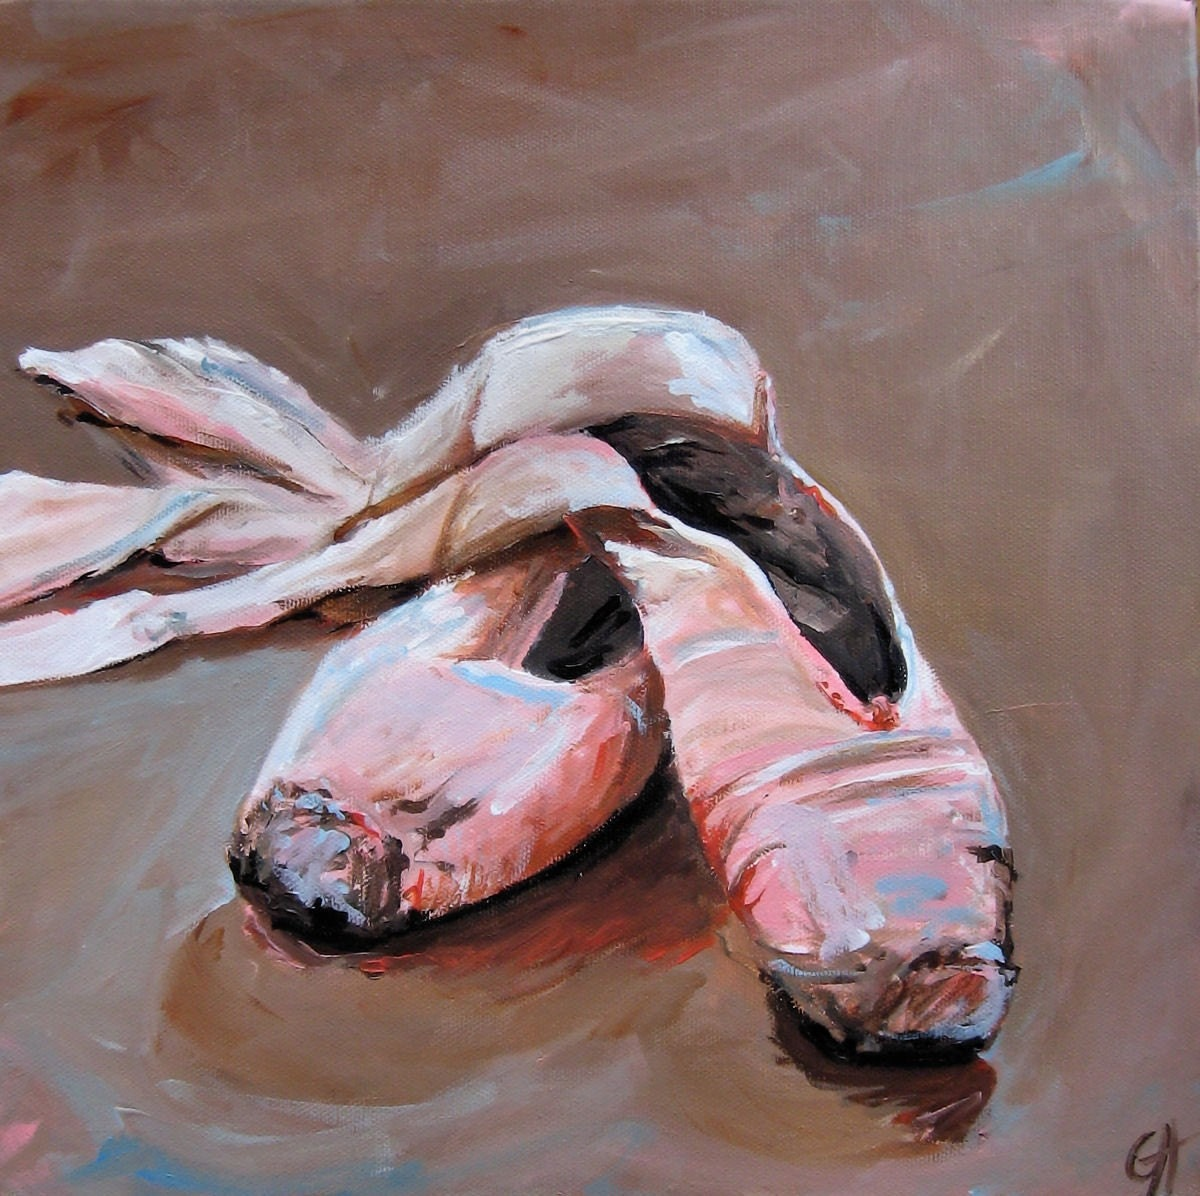 Ballet Shoes - Original Acrylic Painting - 12 x 12 on 1.5 inch gallery wrapped canvas